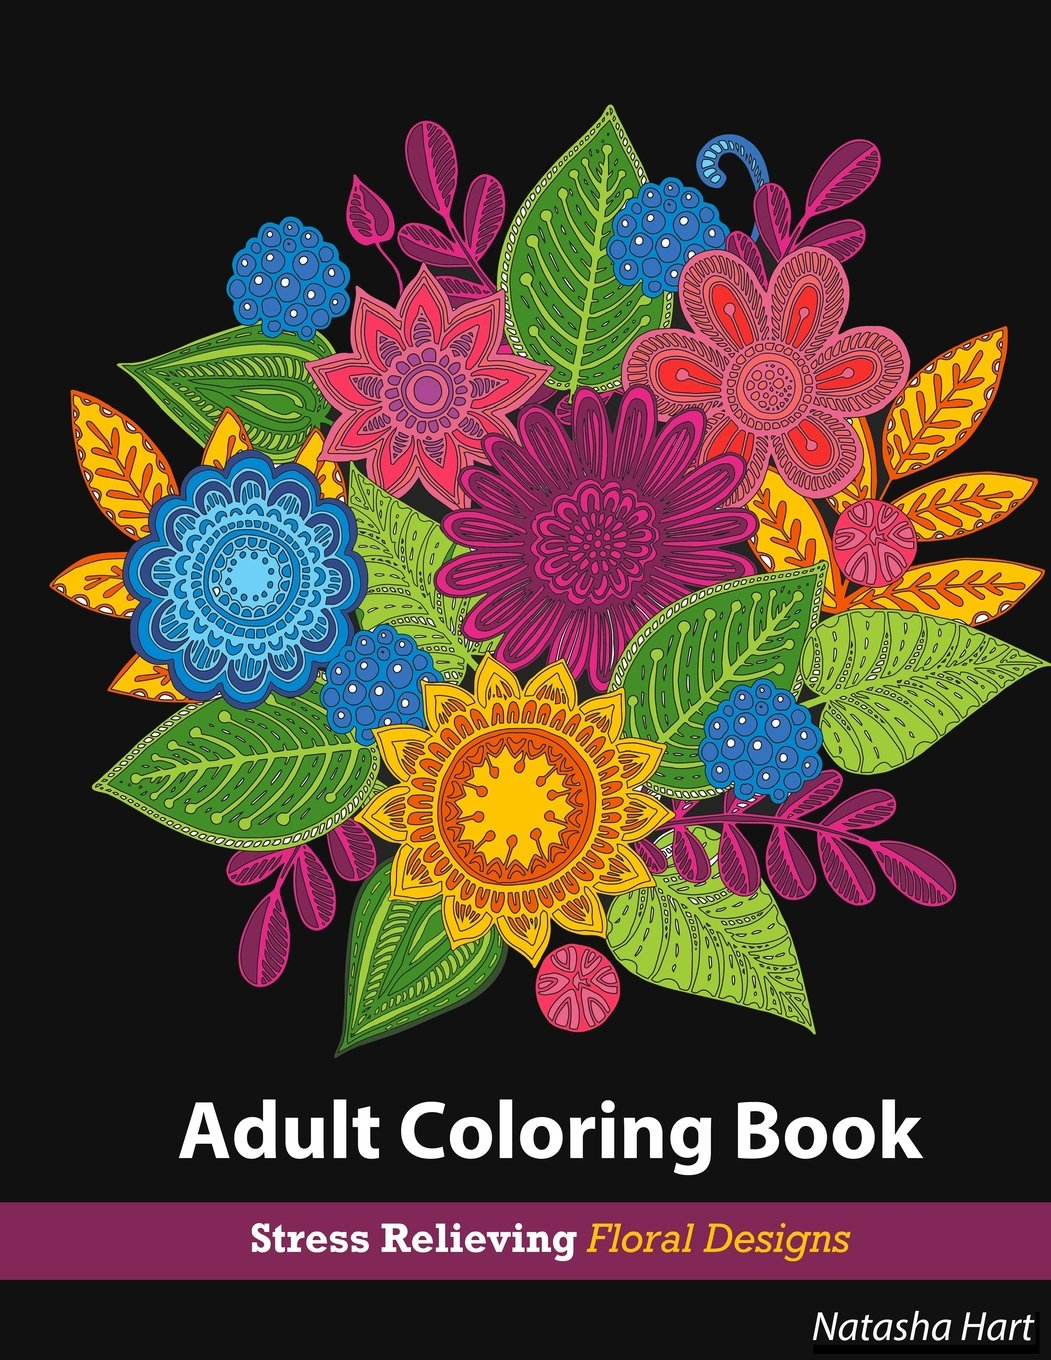 Flowers Designs Coloring Book: Adult Coloring Book Flowers for Relaxation : Stress Relieving Patterns (adult coloring books flowers, flower coloring book, garden flowers coloring book) (Volume 1)